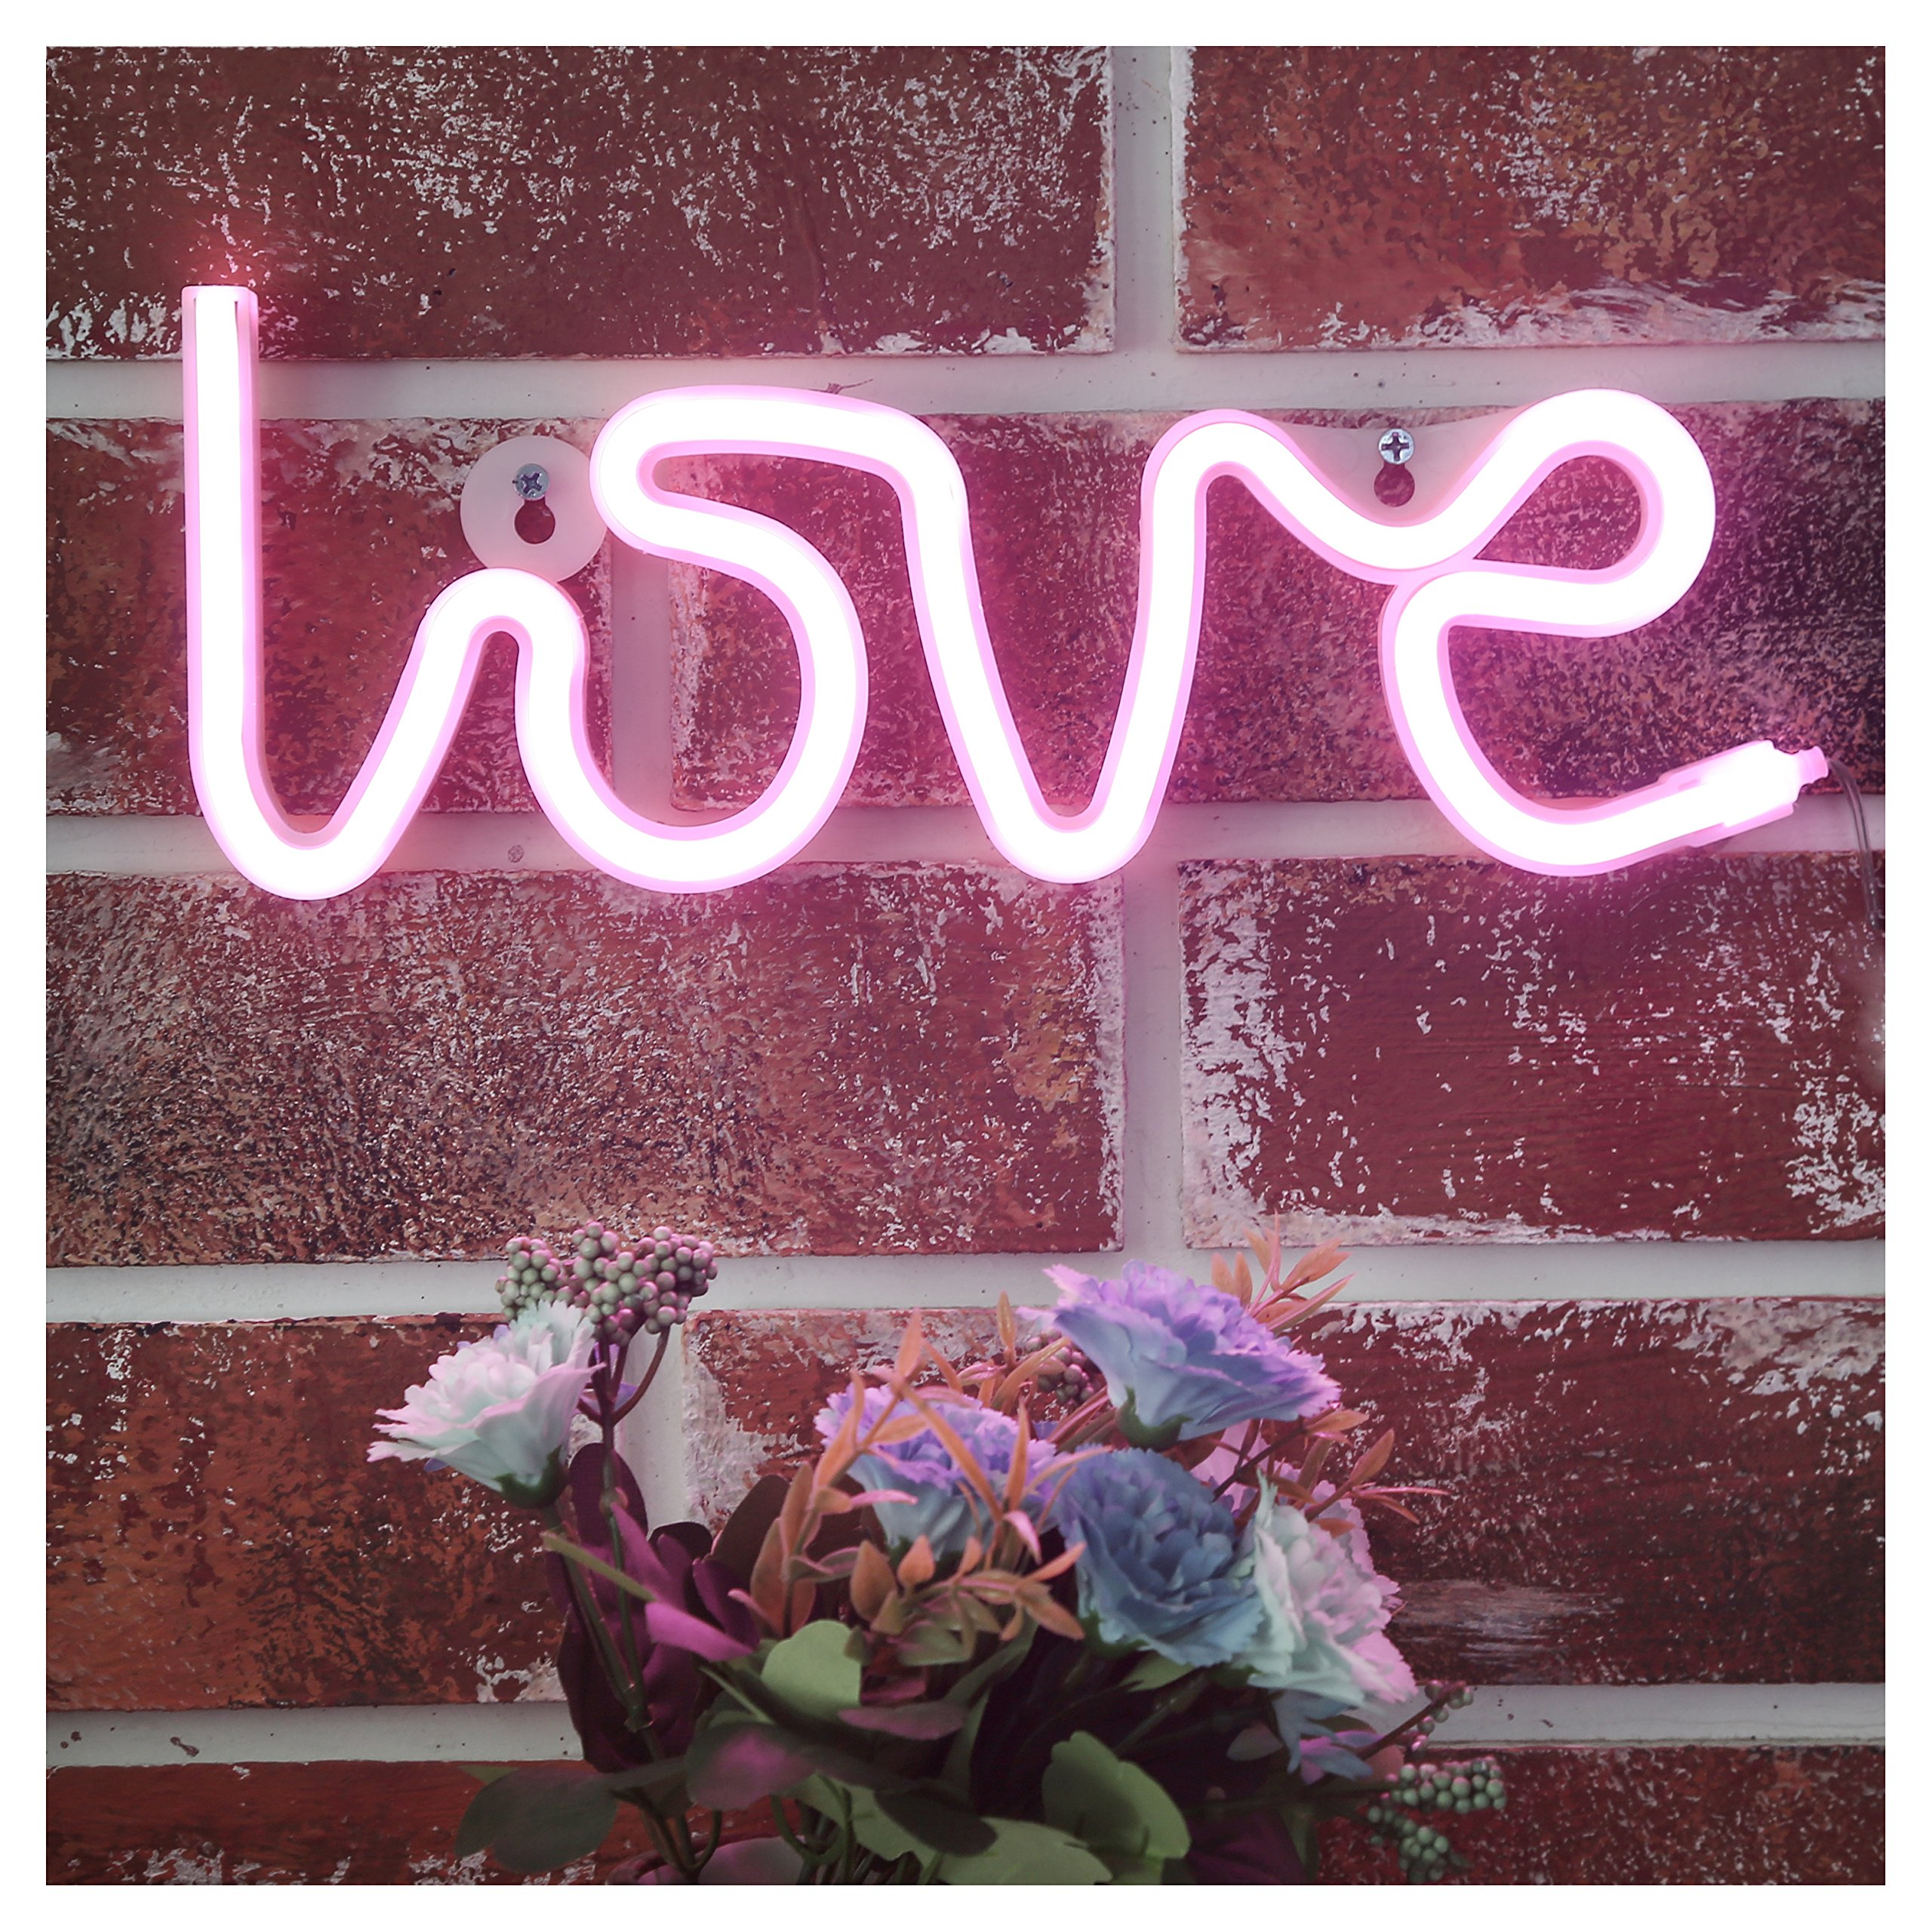 YiiY Neon Light Signs Pink Love Decor Light,Wall Decor for Chistmas,Kids Room,Wedding Party Decor, Bedroom, Pub,Valentine's Day